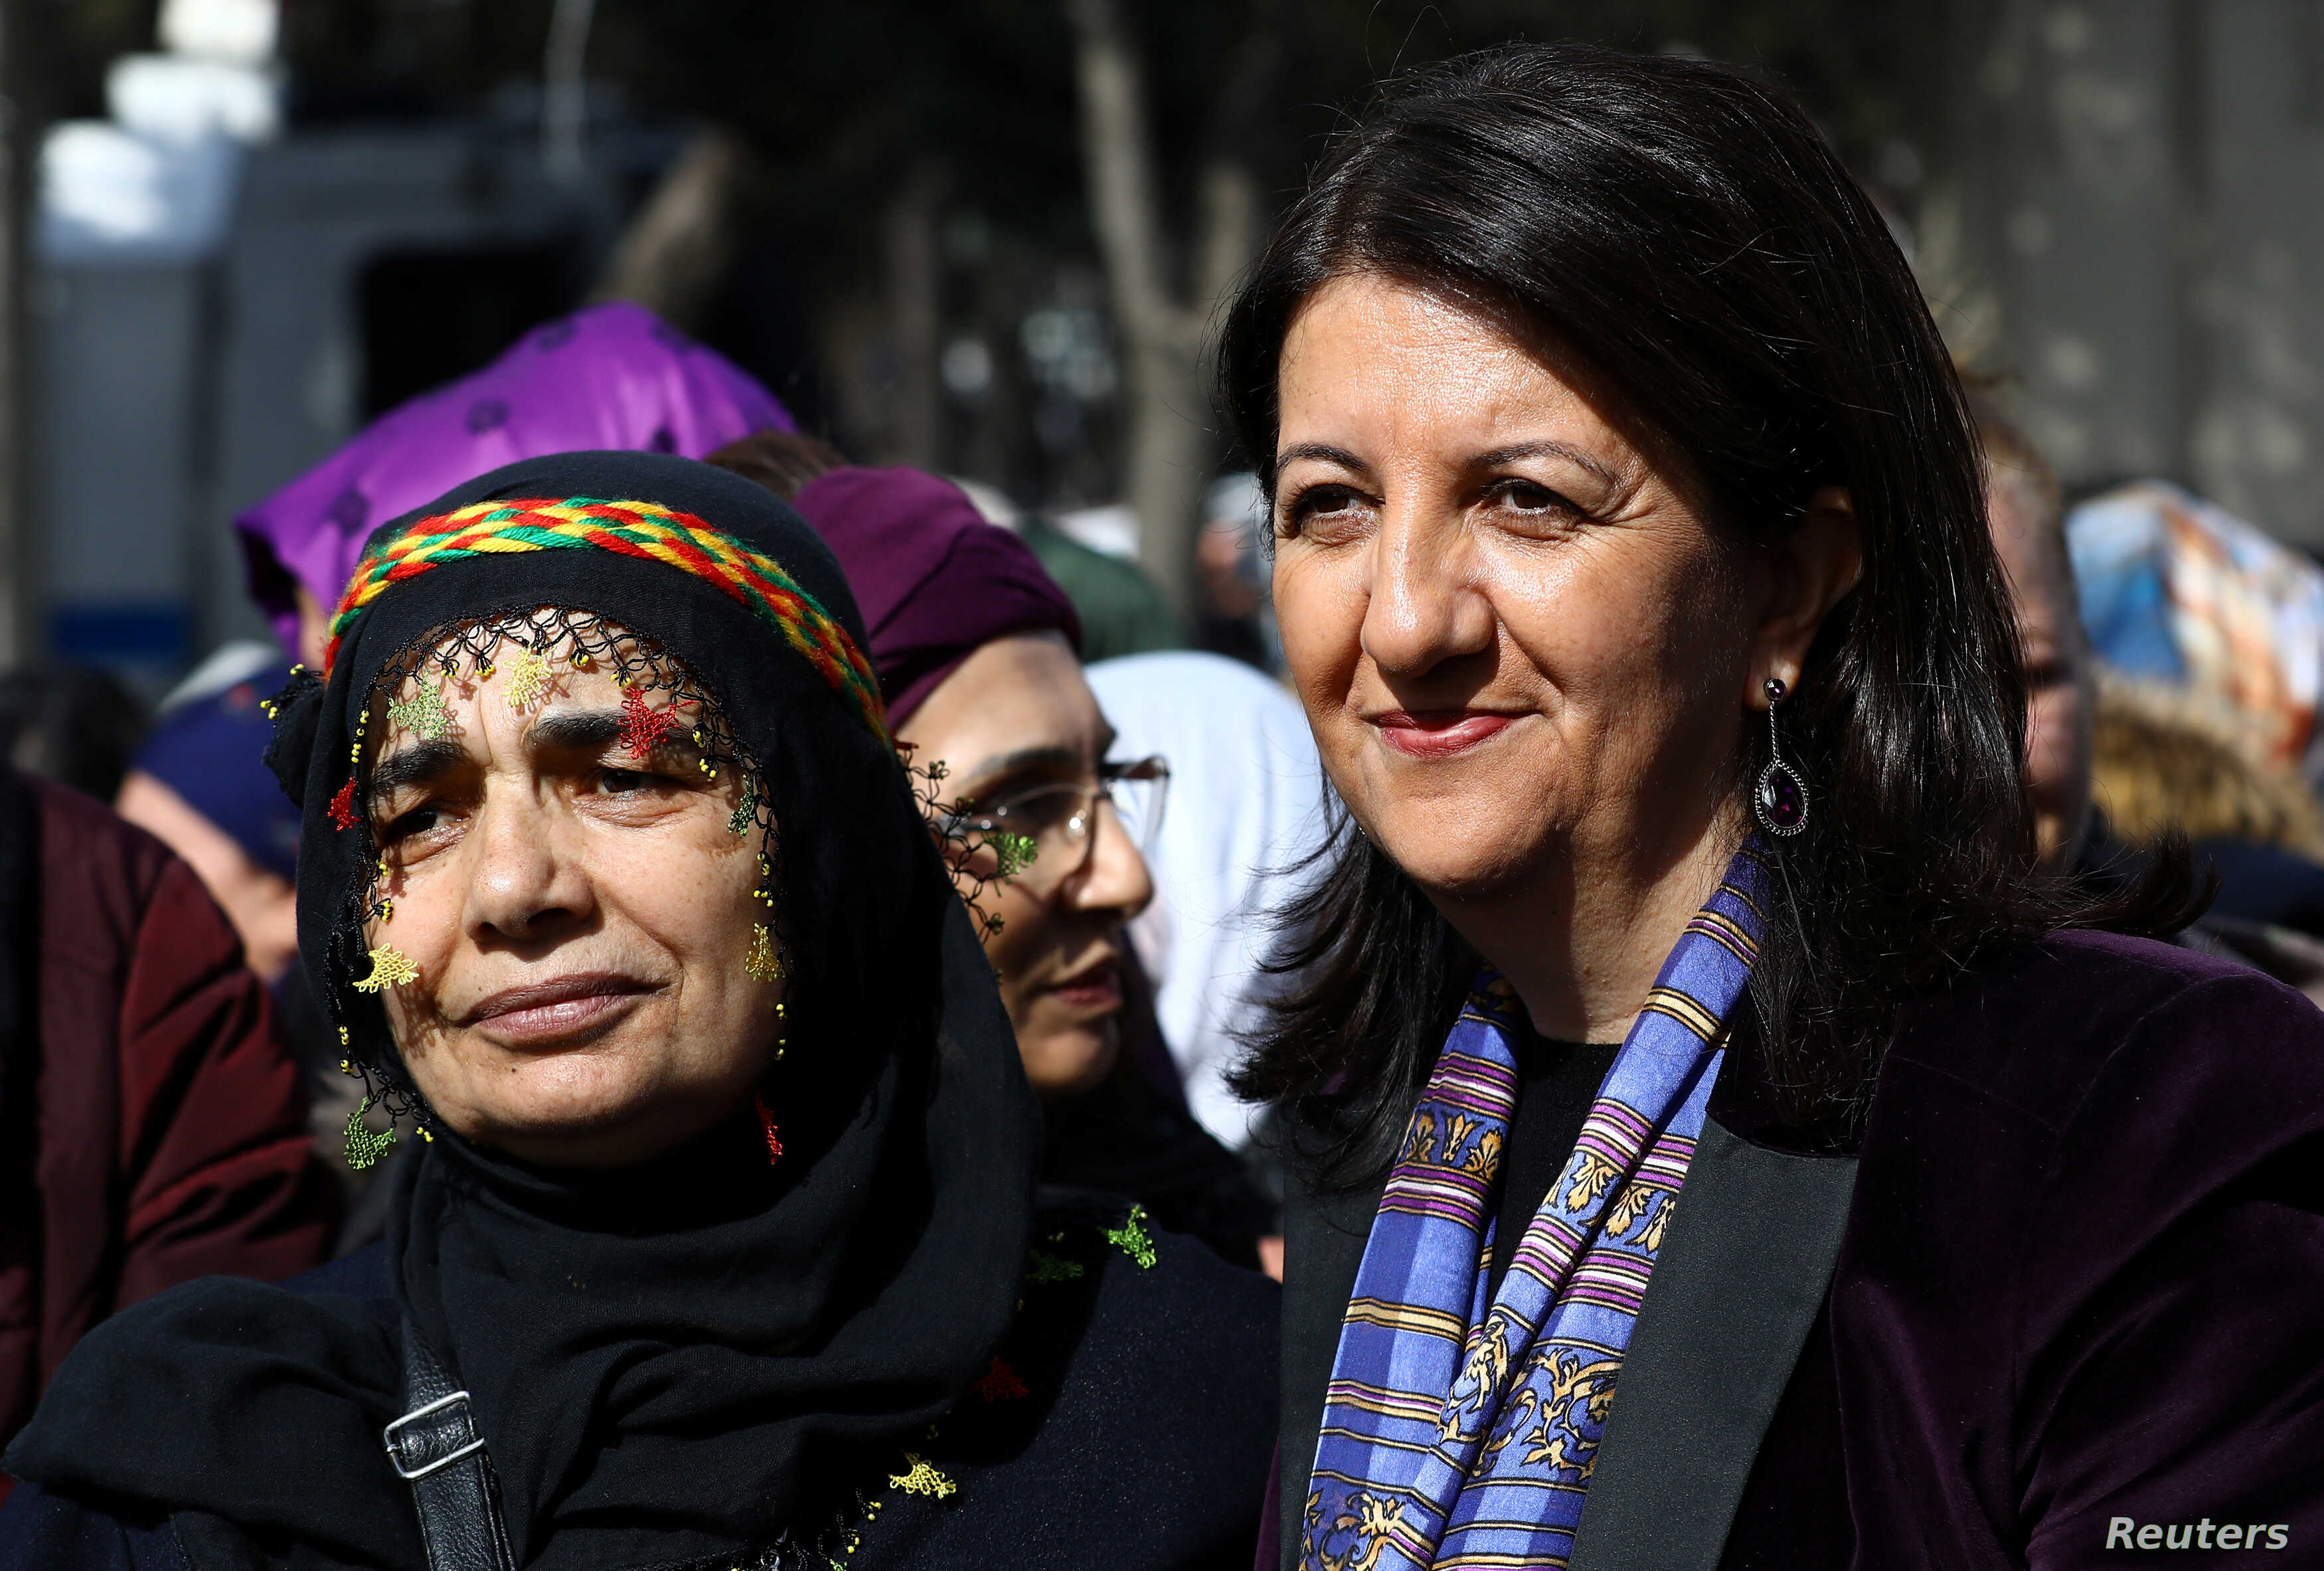 FILE - Pervin Buldan, right, a co-leader of Turkey's main pro-Kurdish Peoples' Democratic Party (HDP), poses with a supporter during a Women's Day rally in Istanbul, Turkey, March 4, 2018.